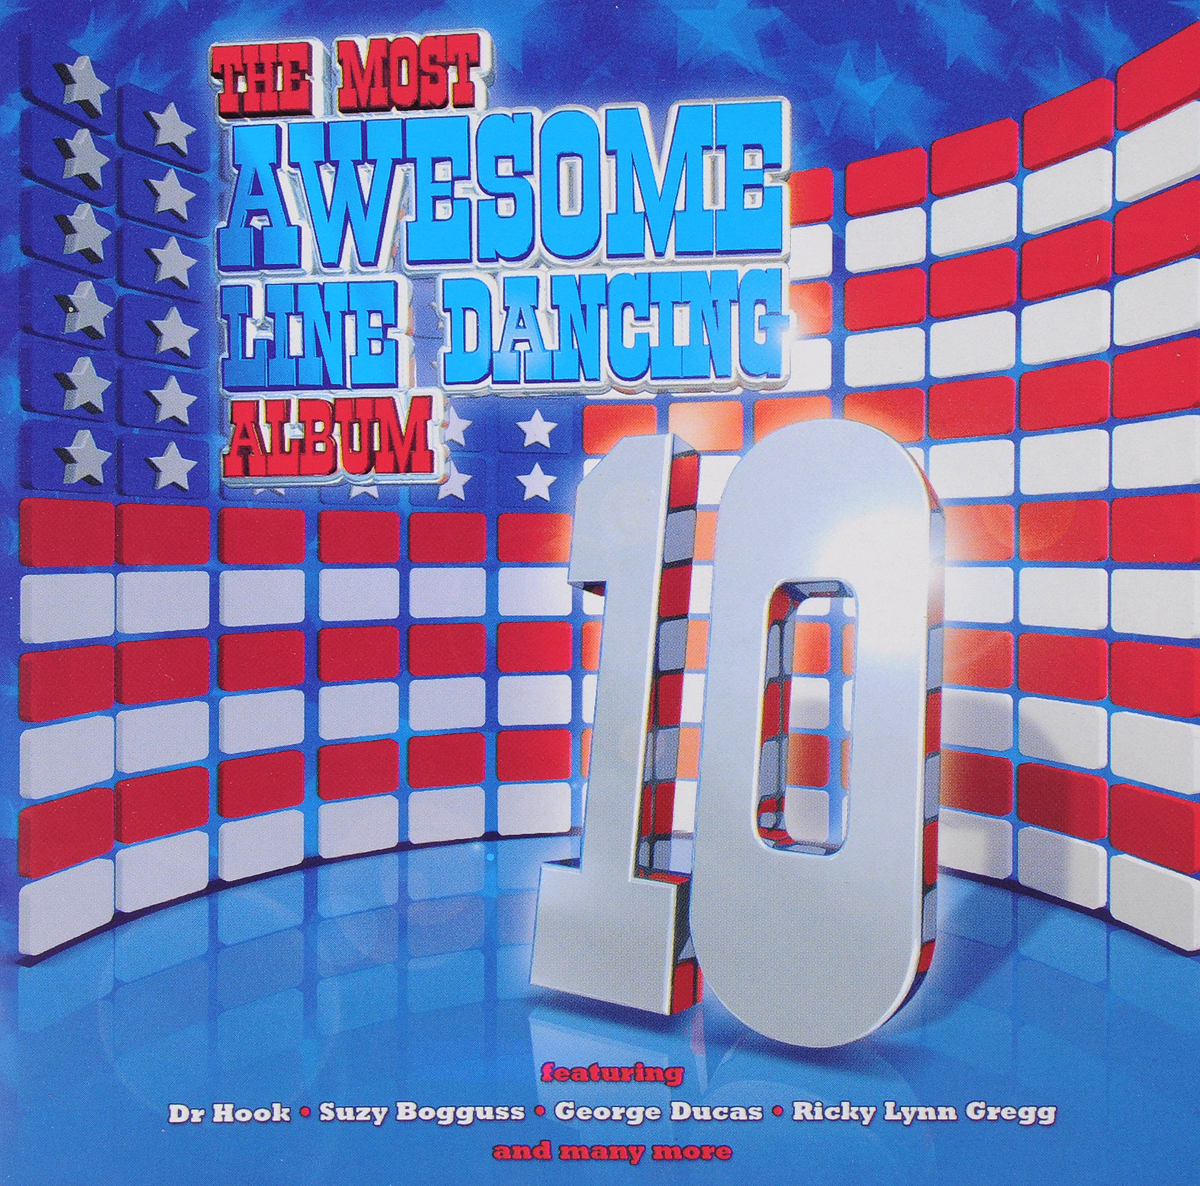 VARIOUS ARTISTS. THE MOST AWESOME LINE DANCE ALBUM 10